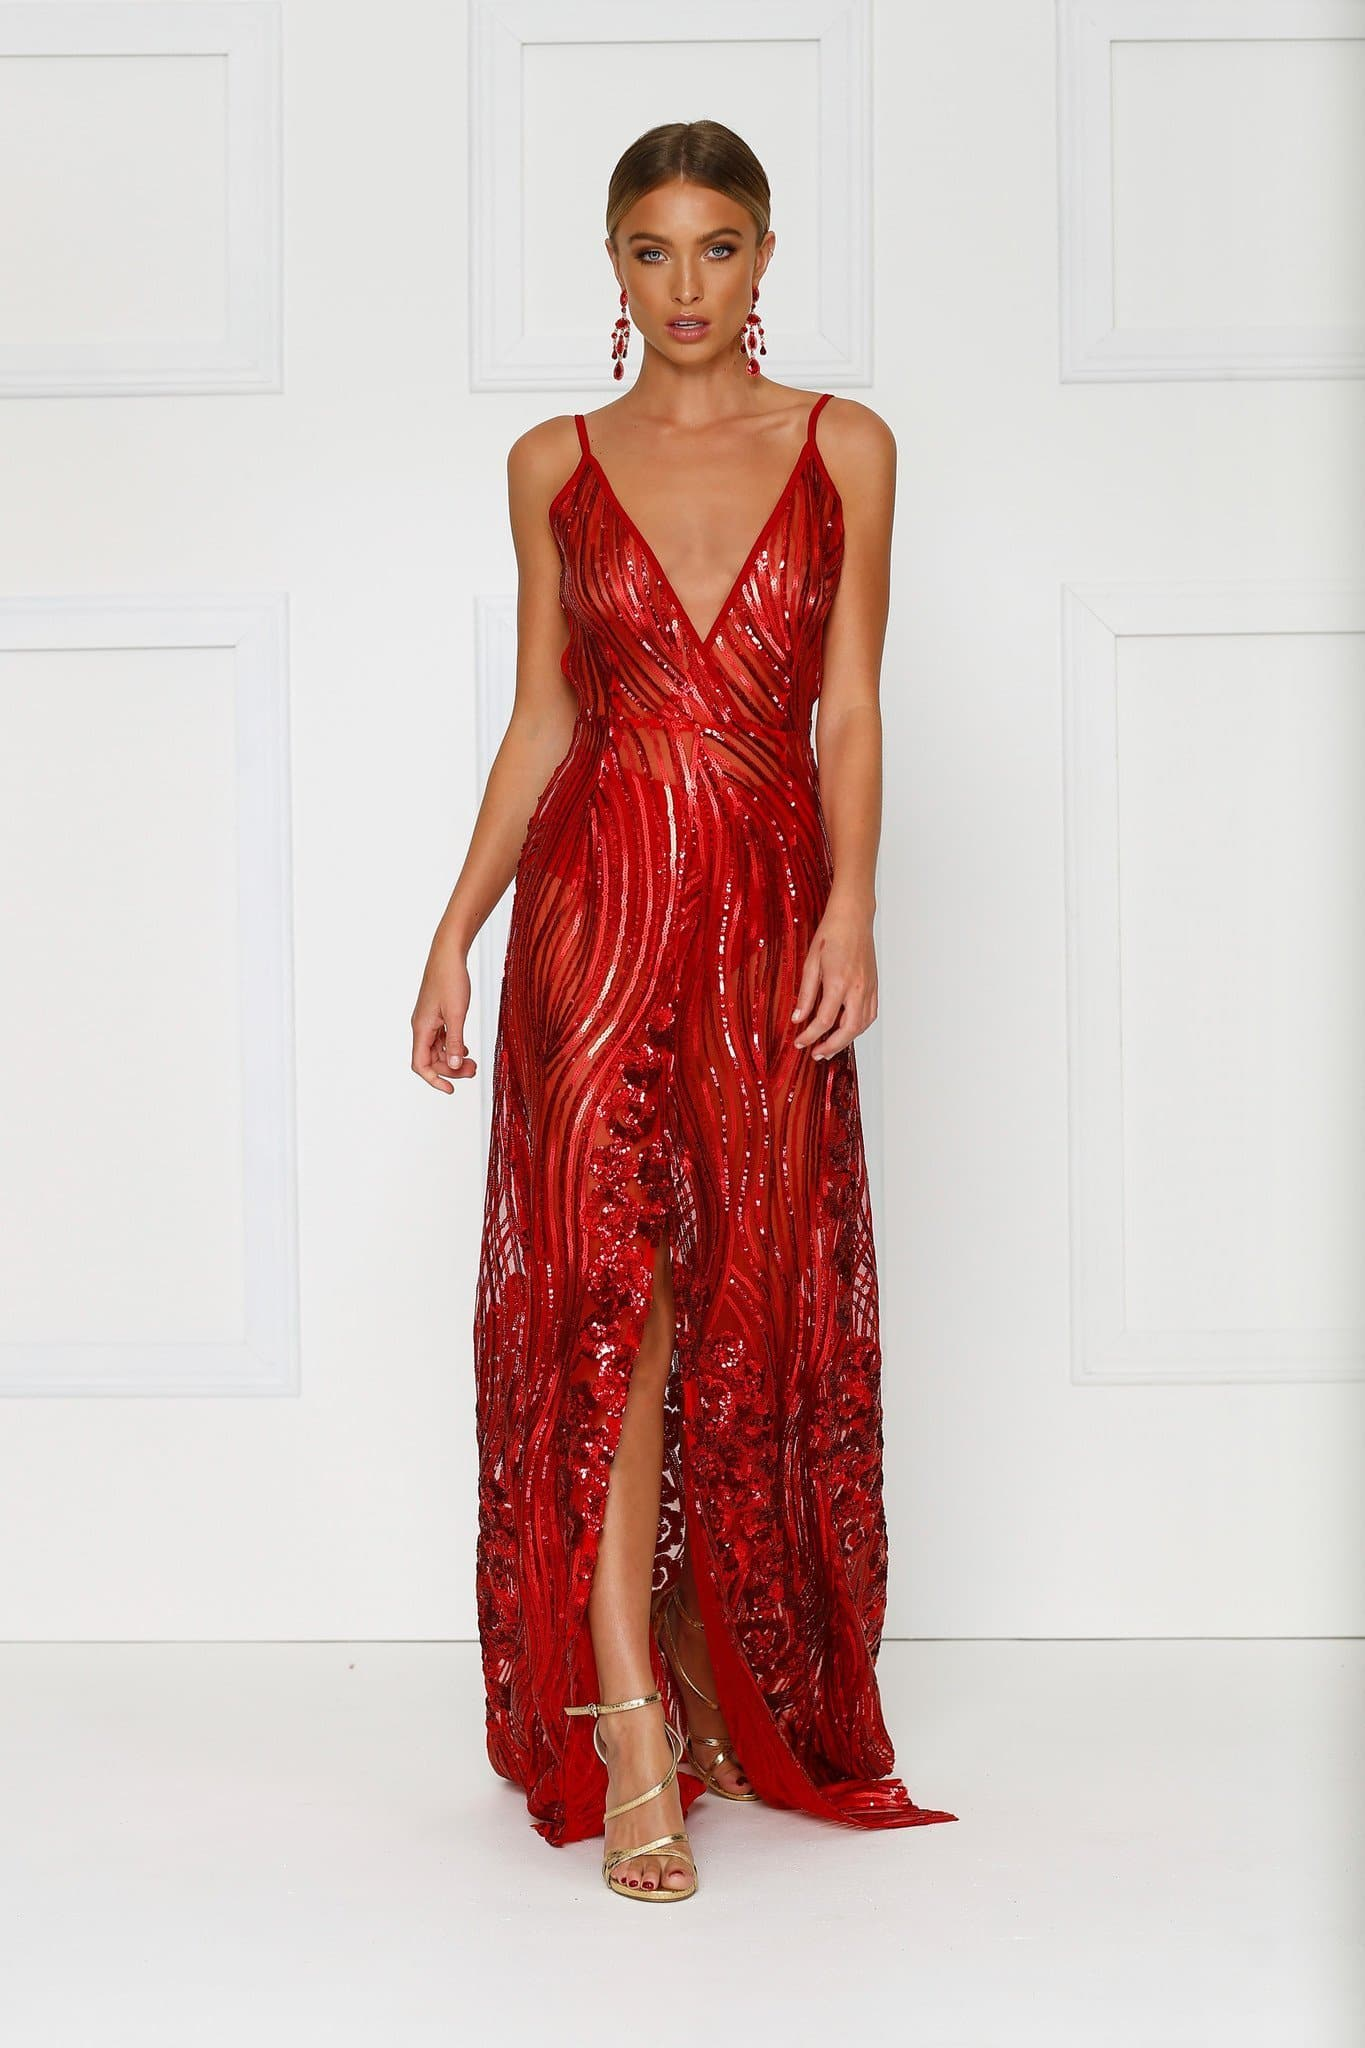 f79d45f7 Lacrecia - Sheer Red Sequin Gown with Plunge Neckline & Side Slit